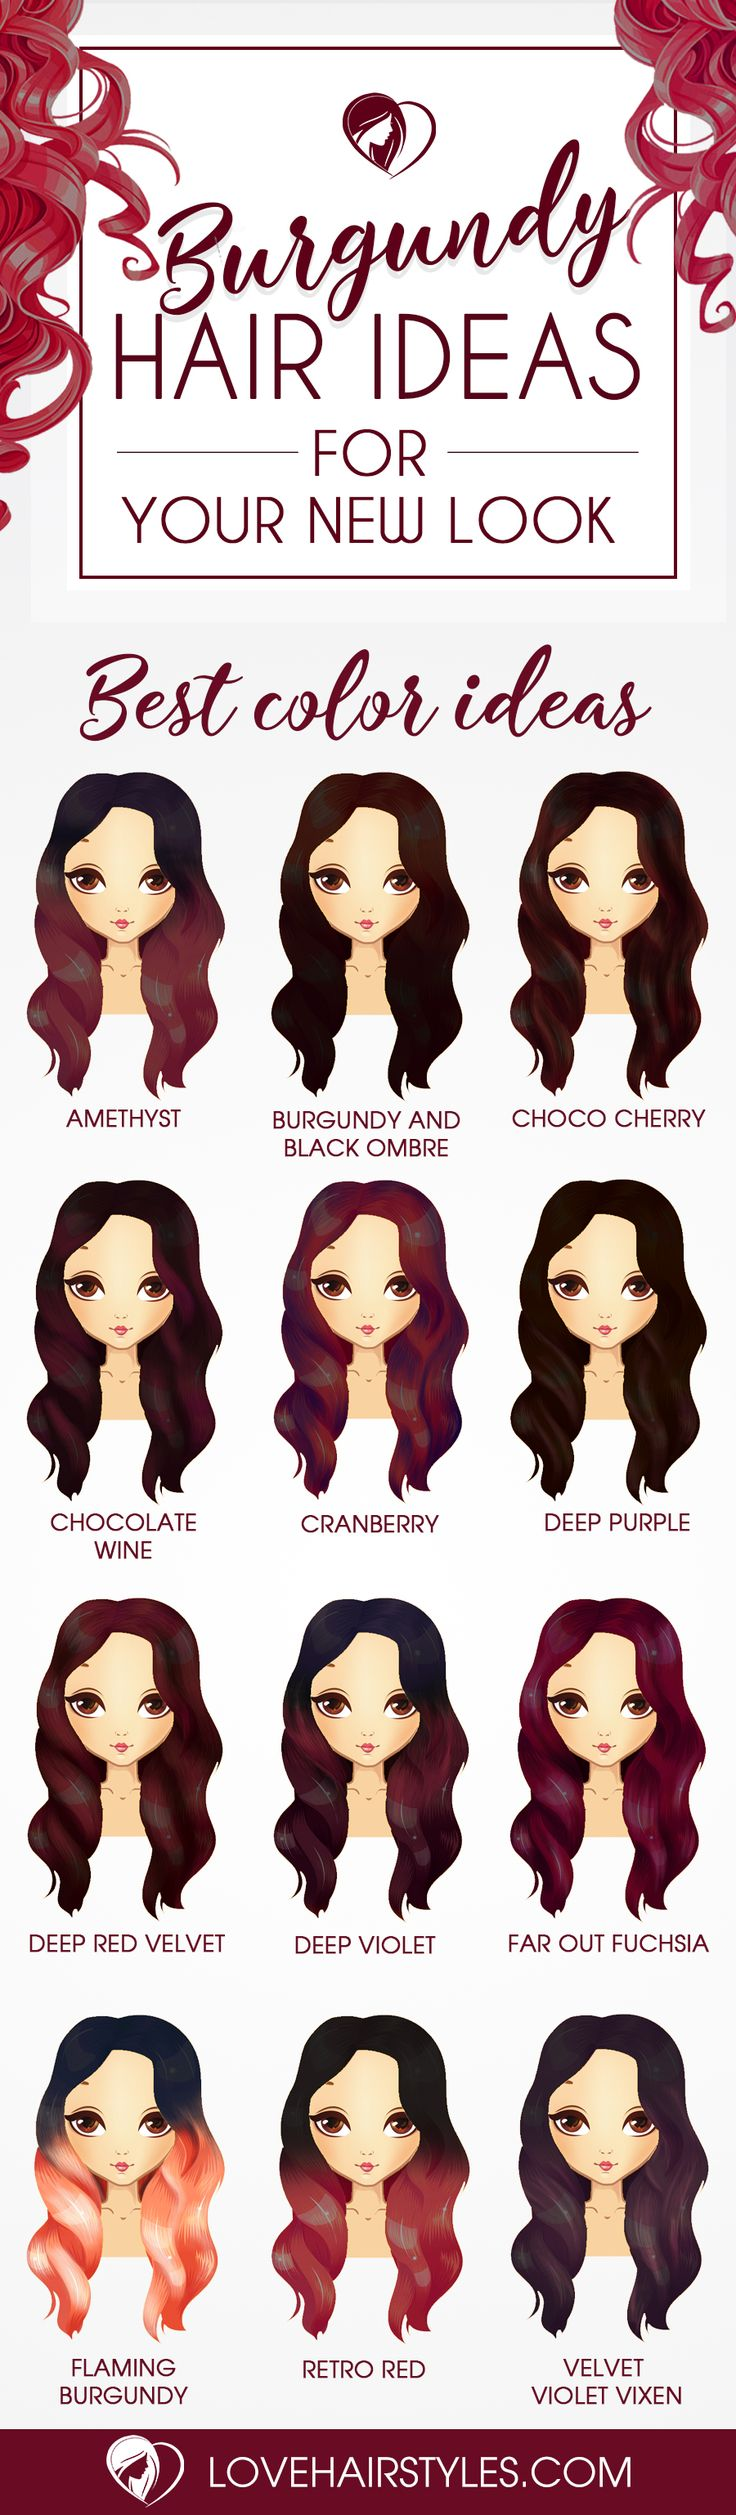 Burgundy hair dye is traditionally used for those with natural brown or black hues. If you are looking for a new hair color, why not try burgundy? As with any red, you will have to touch up your roots when needed and protect your hair by using products designed for color treated hair.